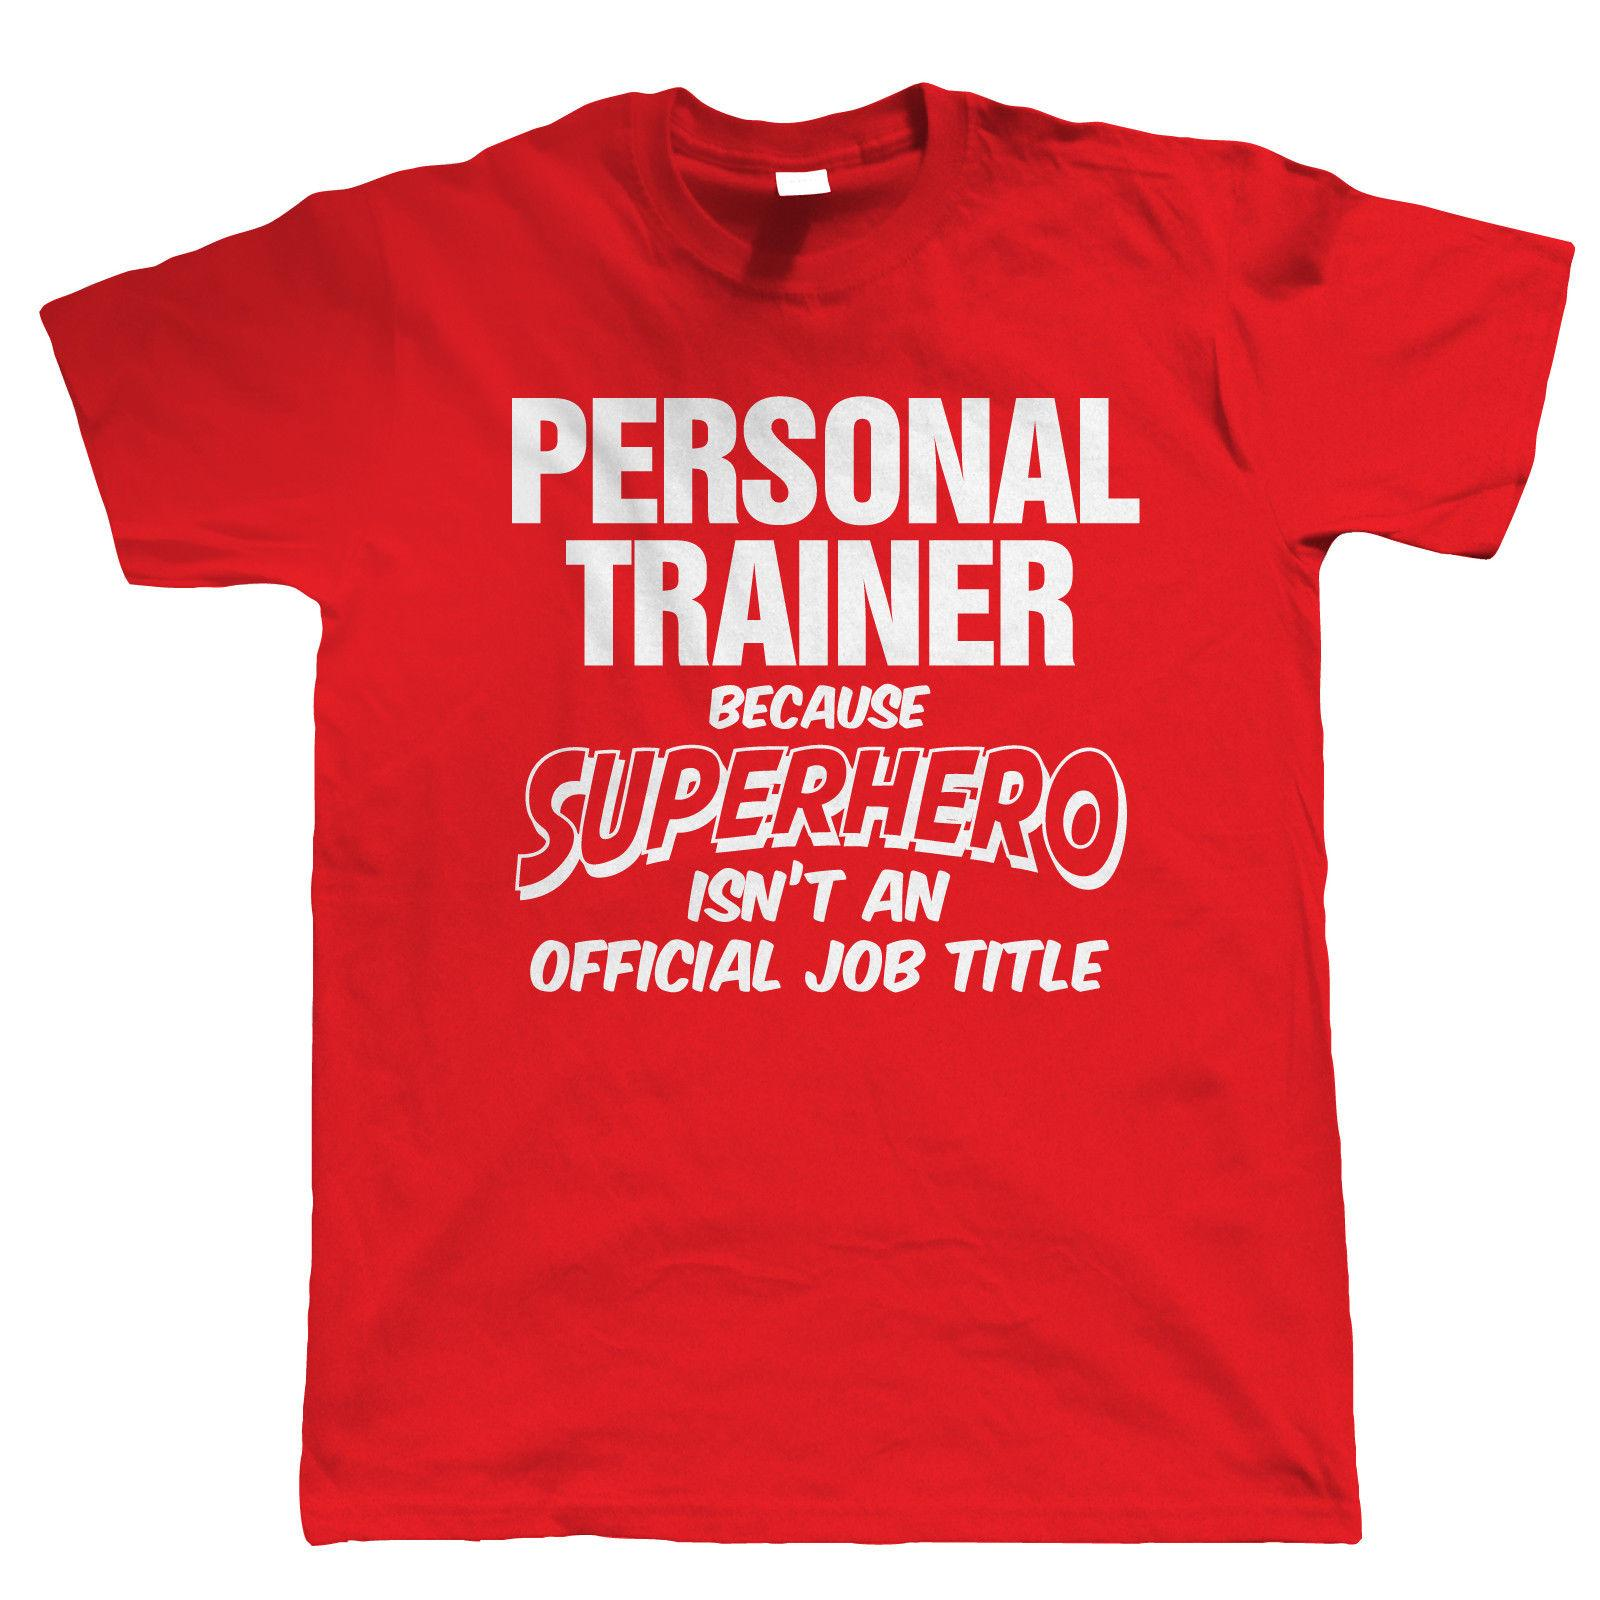 personal trainer superhero mens funny t shirt gift for dad him